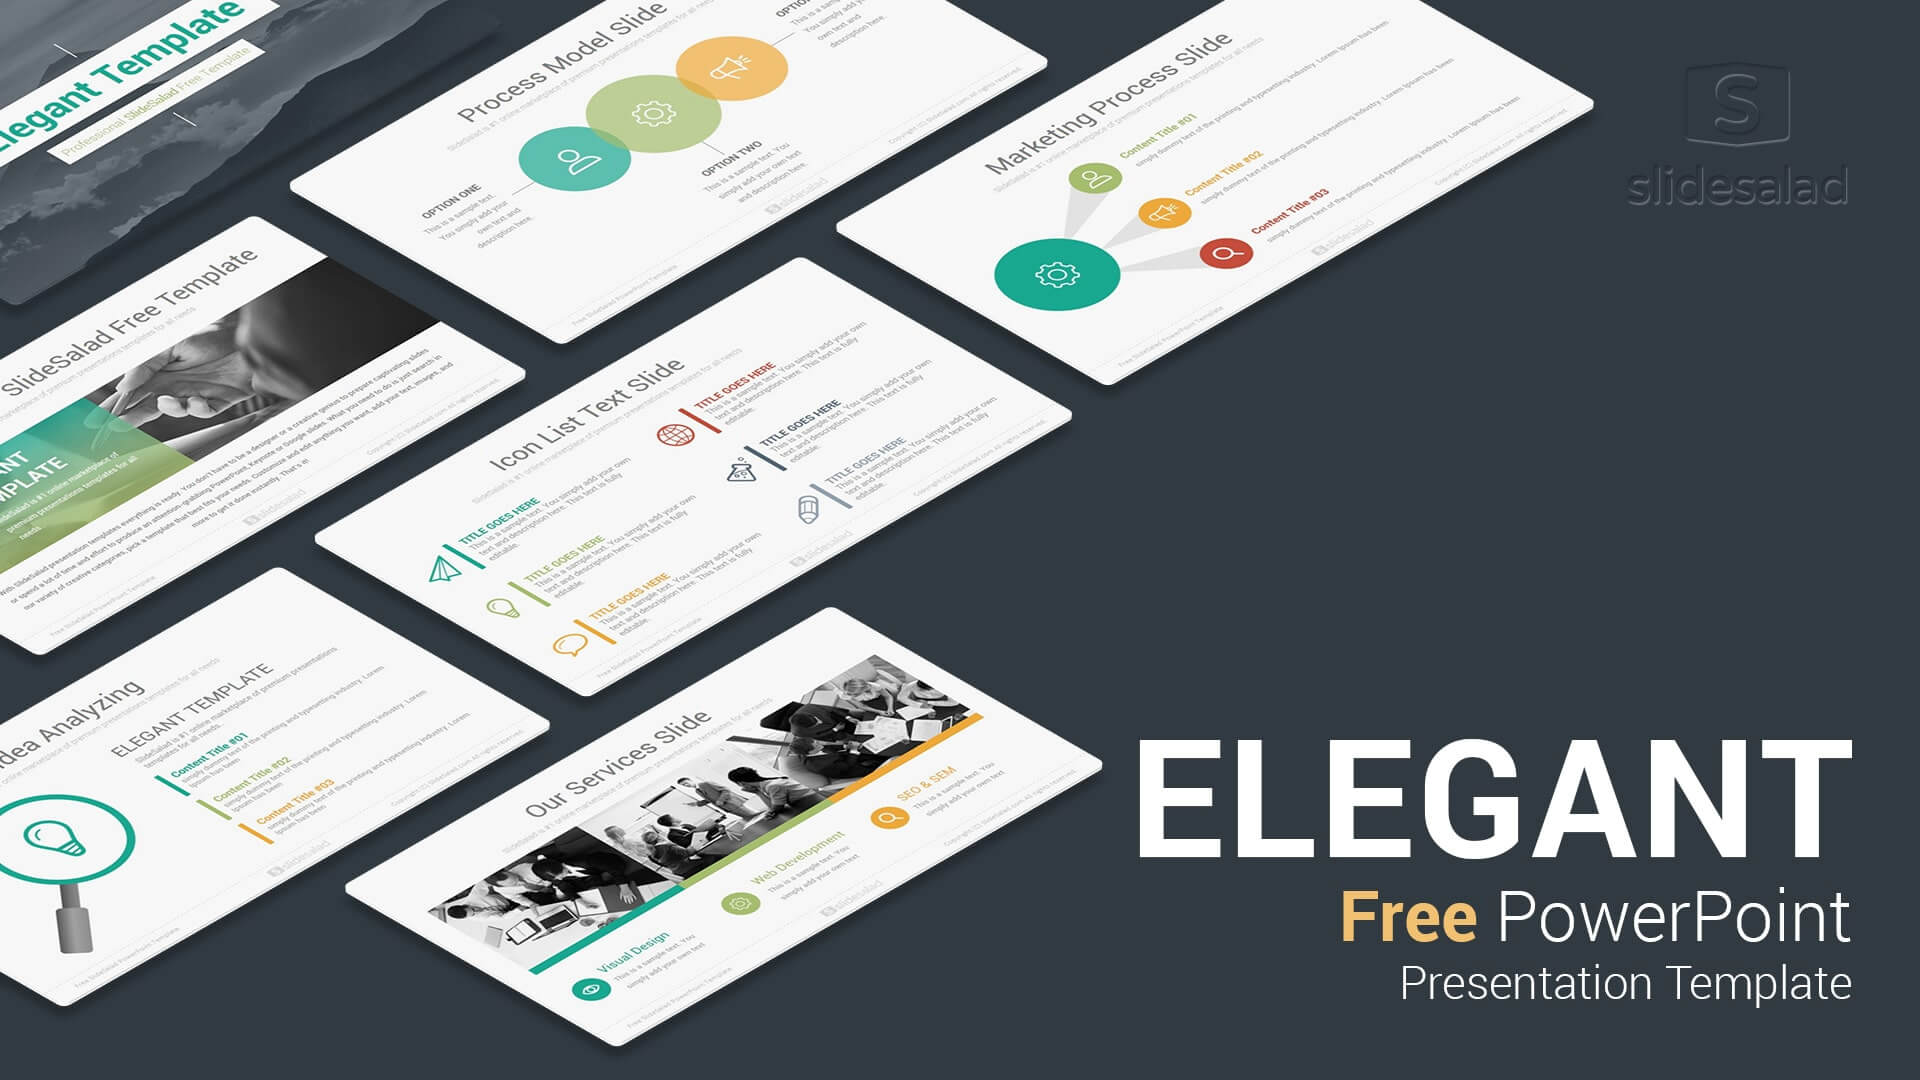 Elegant Free Download Powerpoint Templates For Presentation Inside Free Powerpoint Presentation Templates Downloads